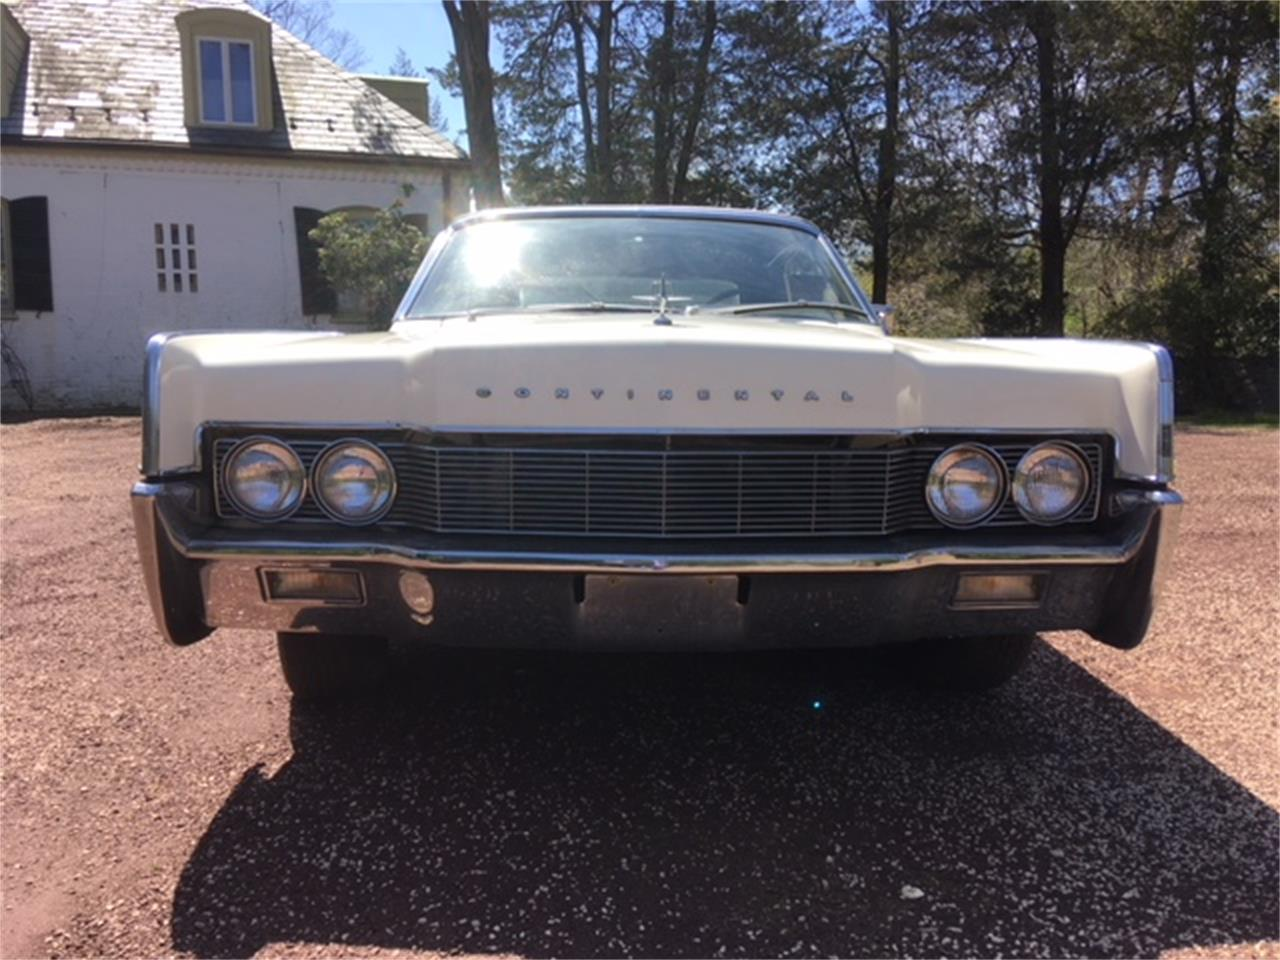 Large Picture of 1967 Lincoln Continental located in Philadelphia Pennsylvania - $29,500.00 Offered by a Private Seller - OTOG